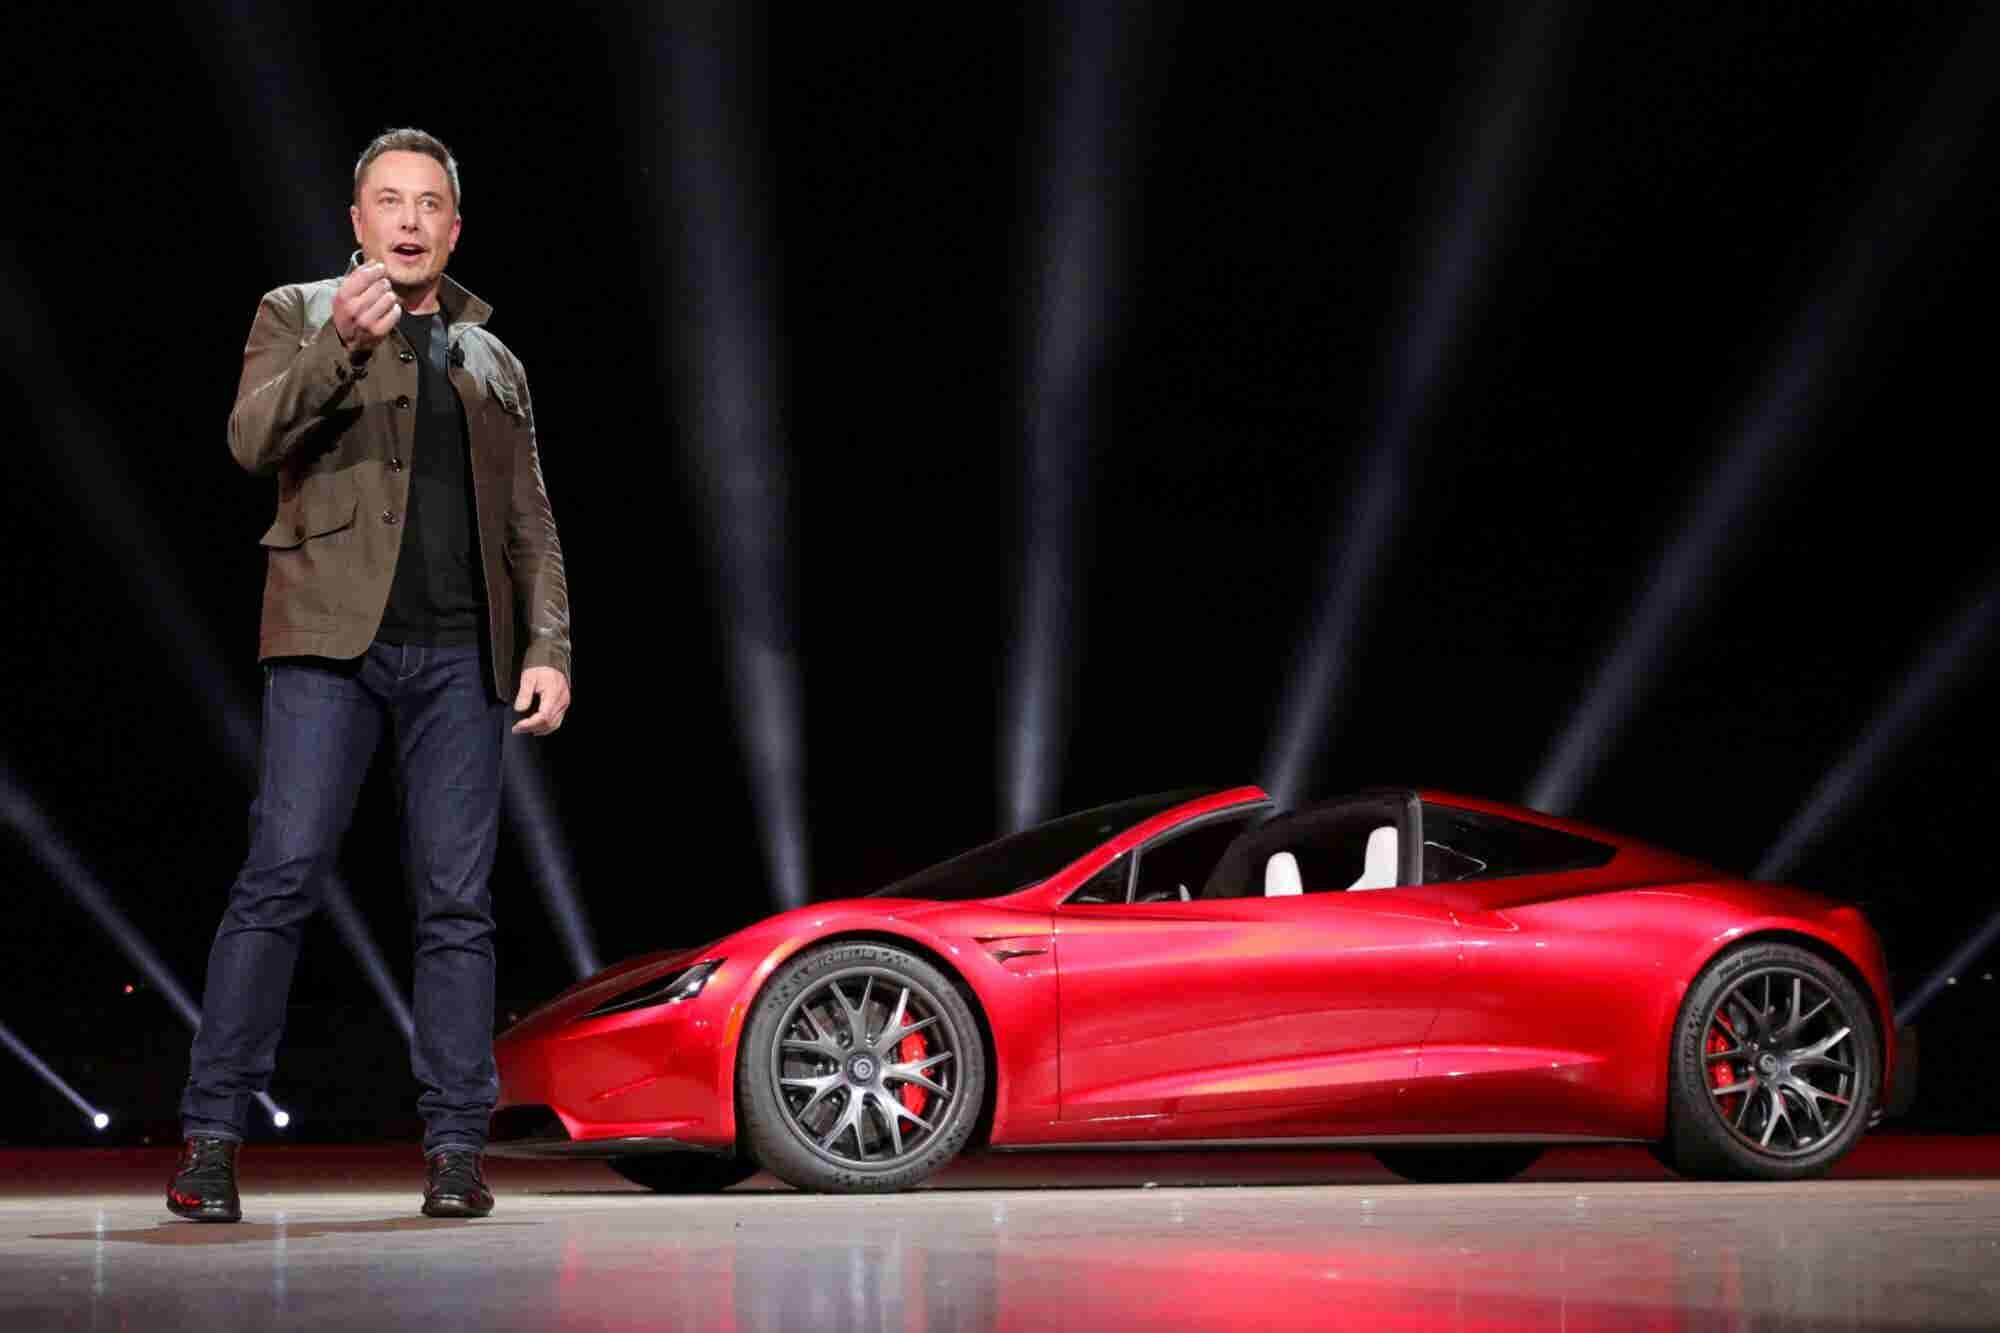 Elon Musk: Mars Trip Could Cost You Less Than $500K or Even $100K